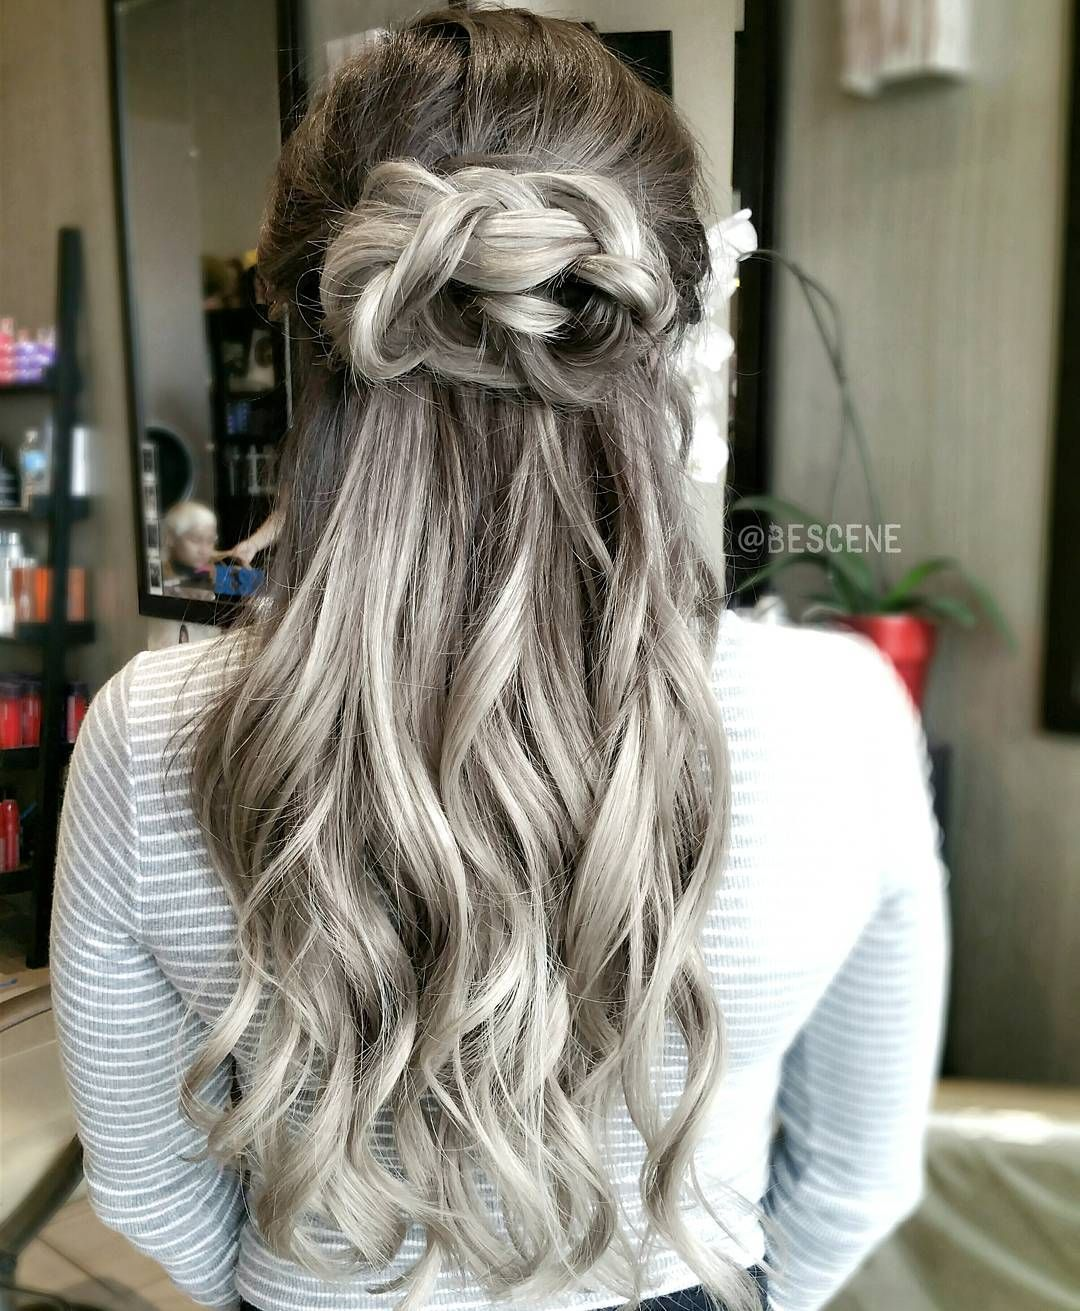 Linh Phan On Instagram K N O T T E D N A T U R A L Styled And Braided By Maayanbescene Color By Me Using Grey Hair Color Hair Trends Grey Ombre Hair